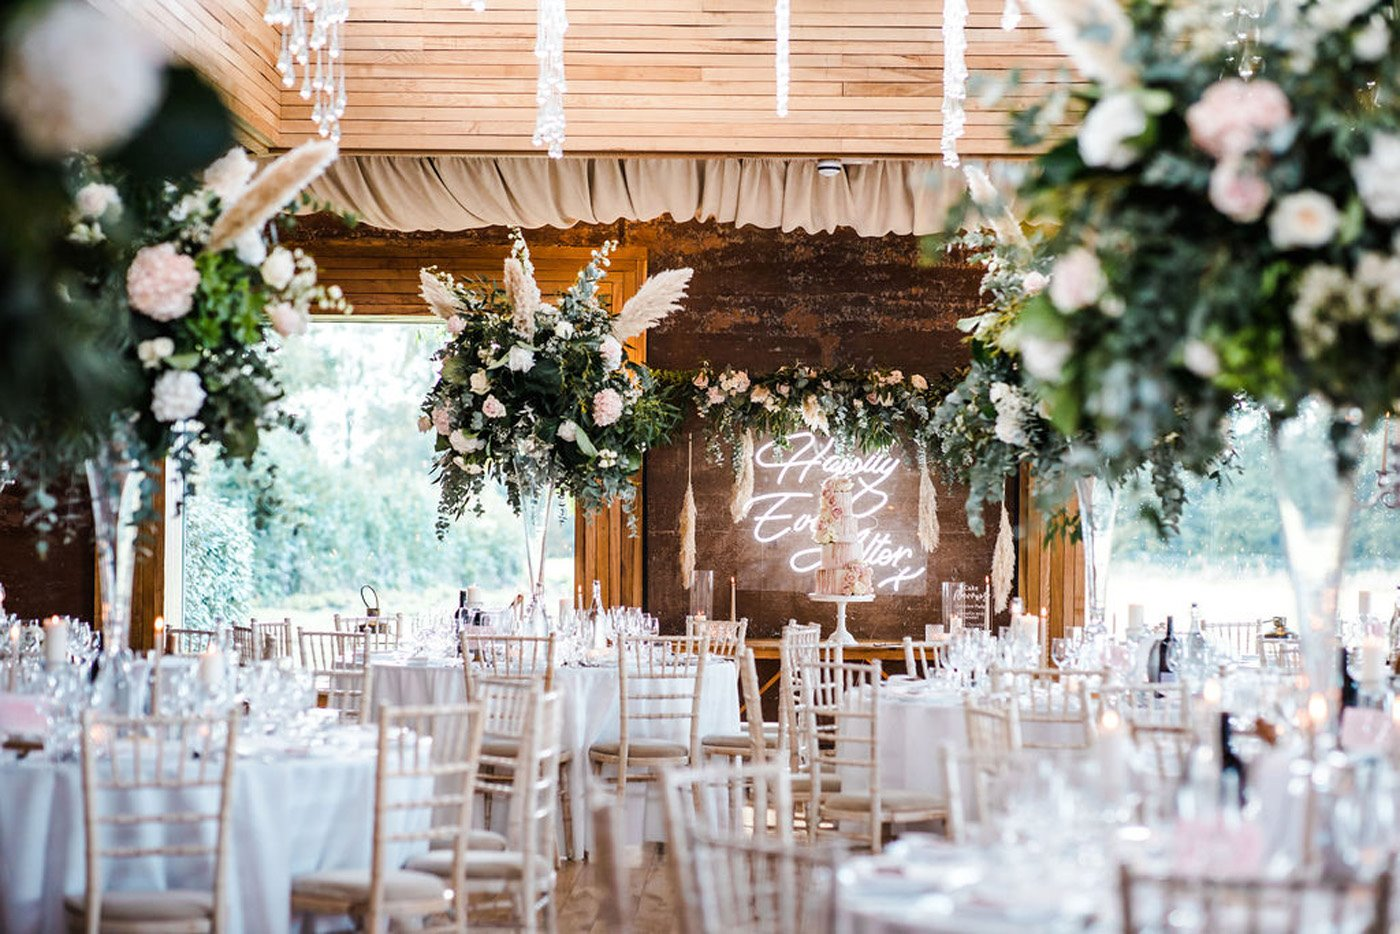 Pretty pink and greenery wedding reception with round tables and foliage pampas grass floral arrangements, neon sign back lighting the cake table